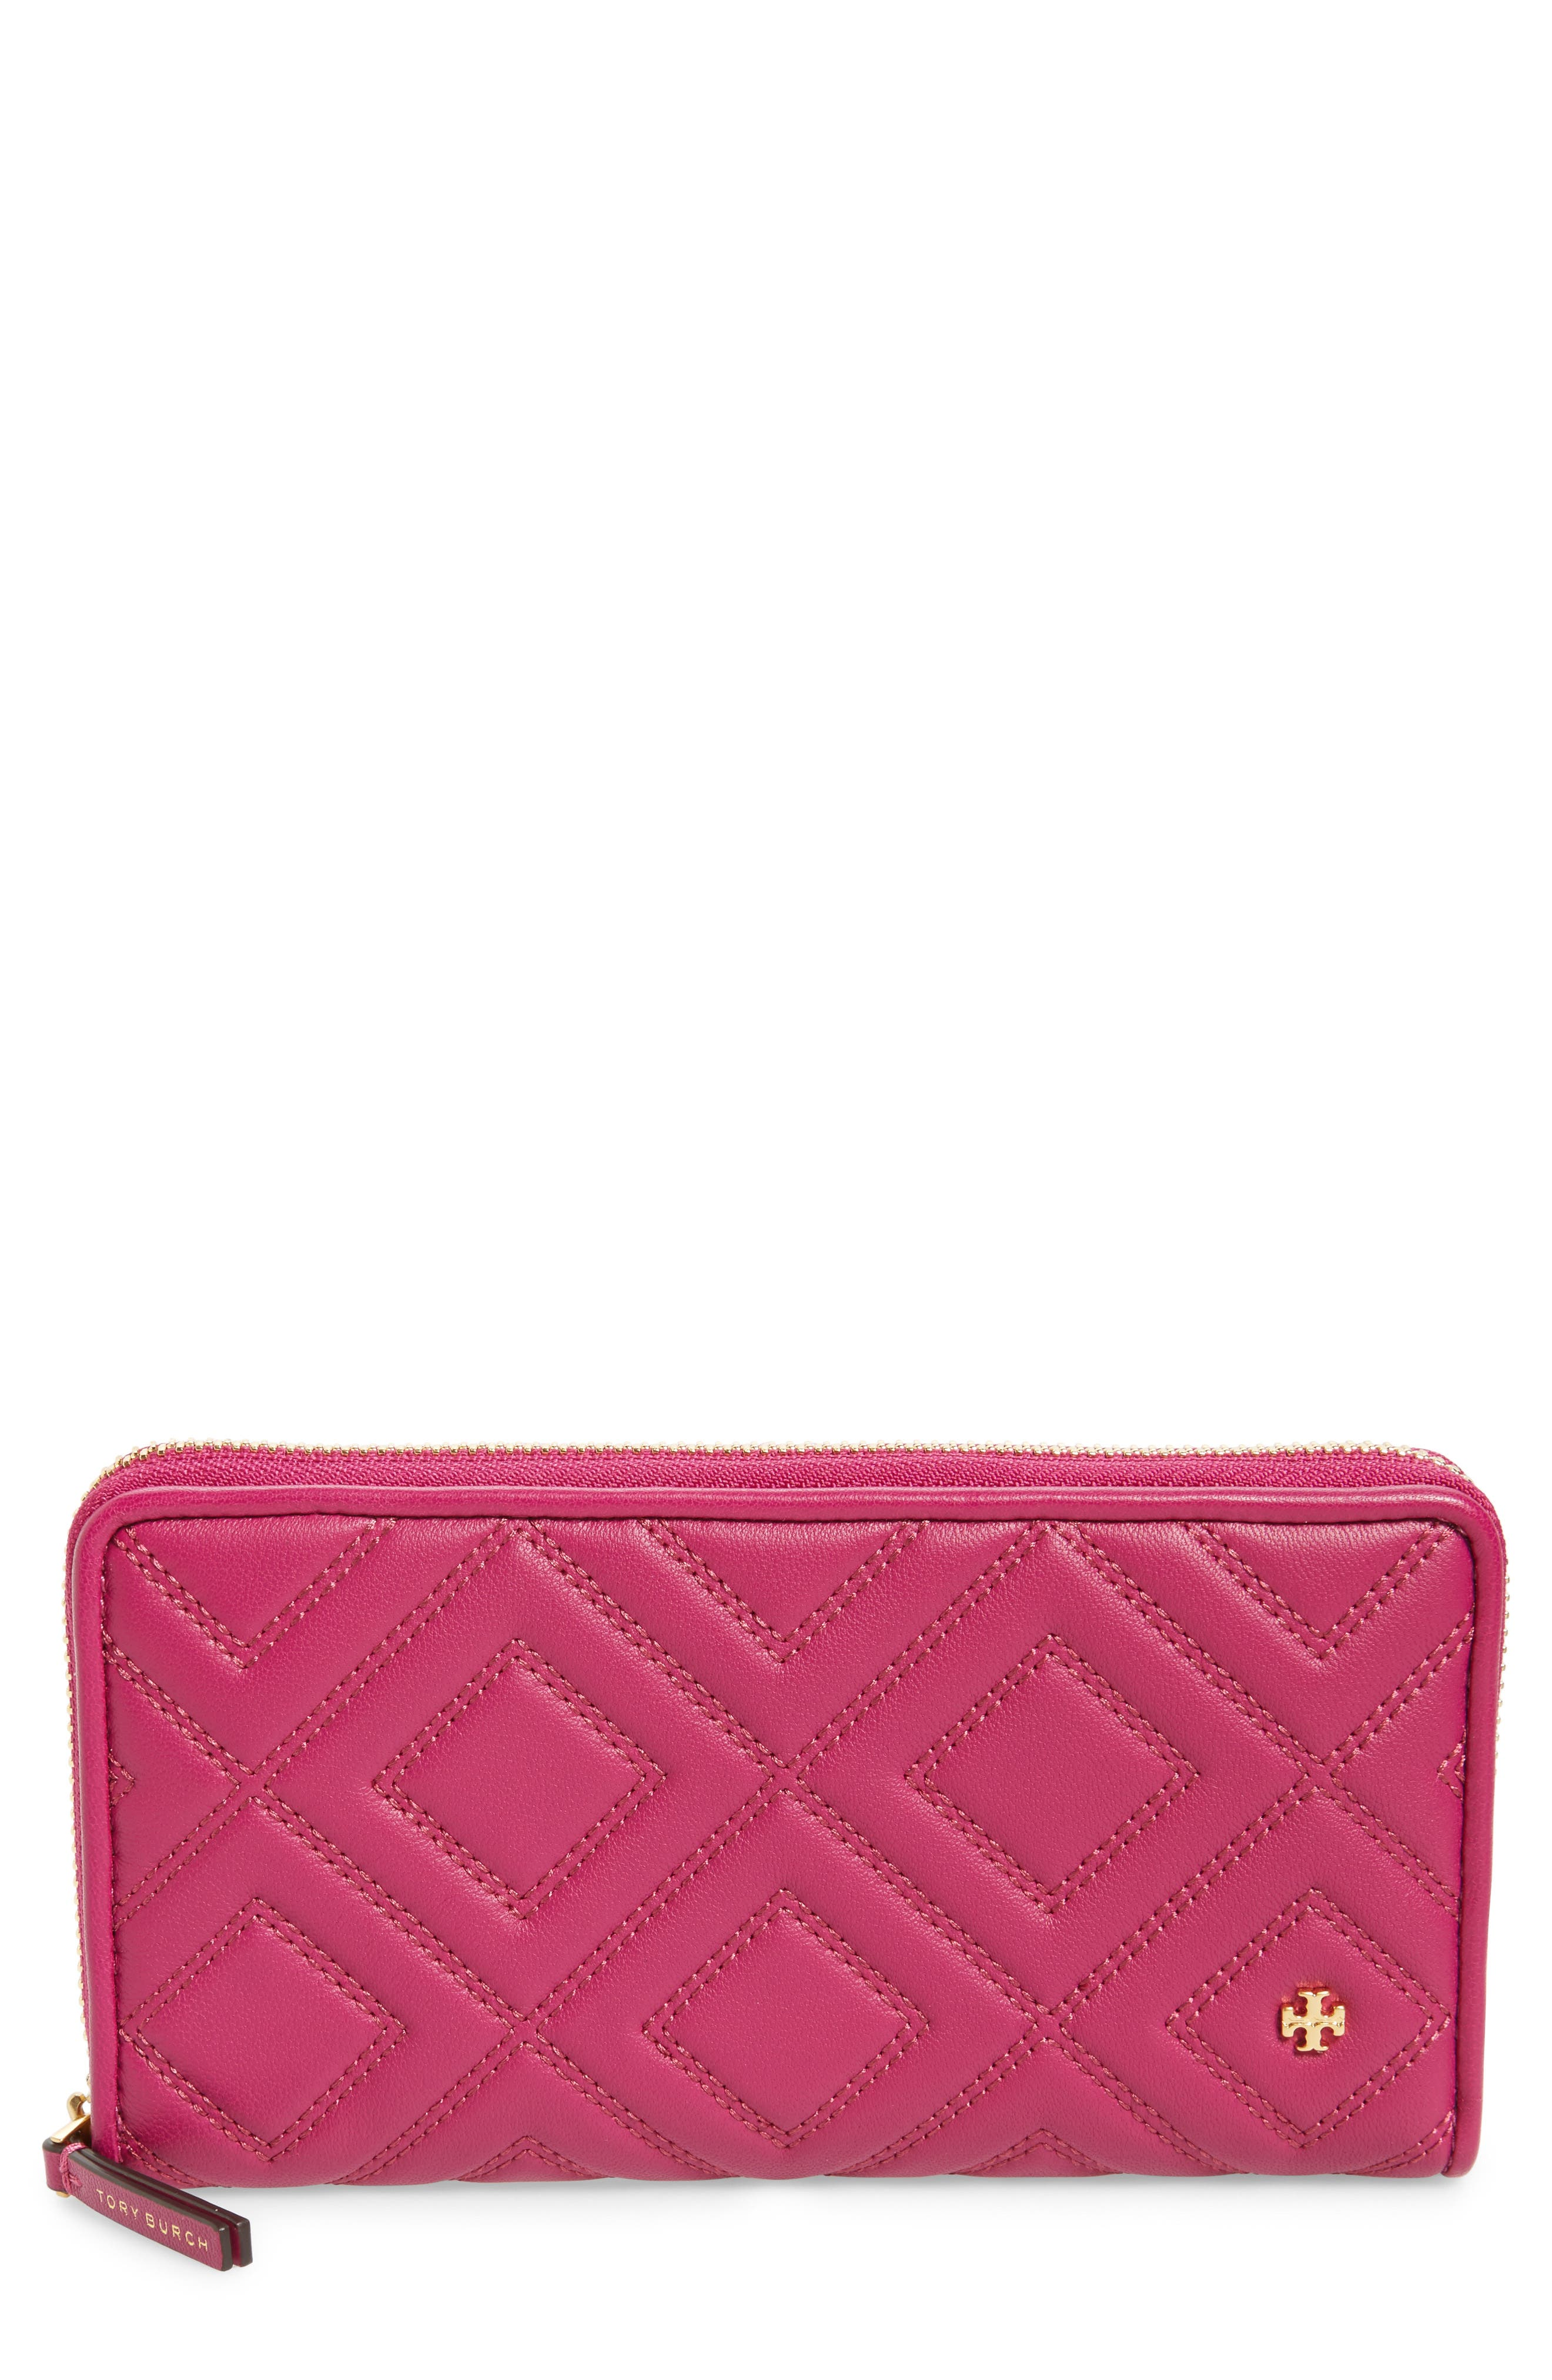 Tory Burch Louisa Embossed Lambskin Leather Continental Wallet